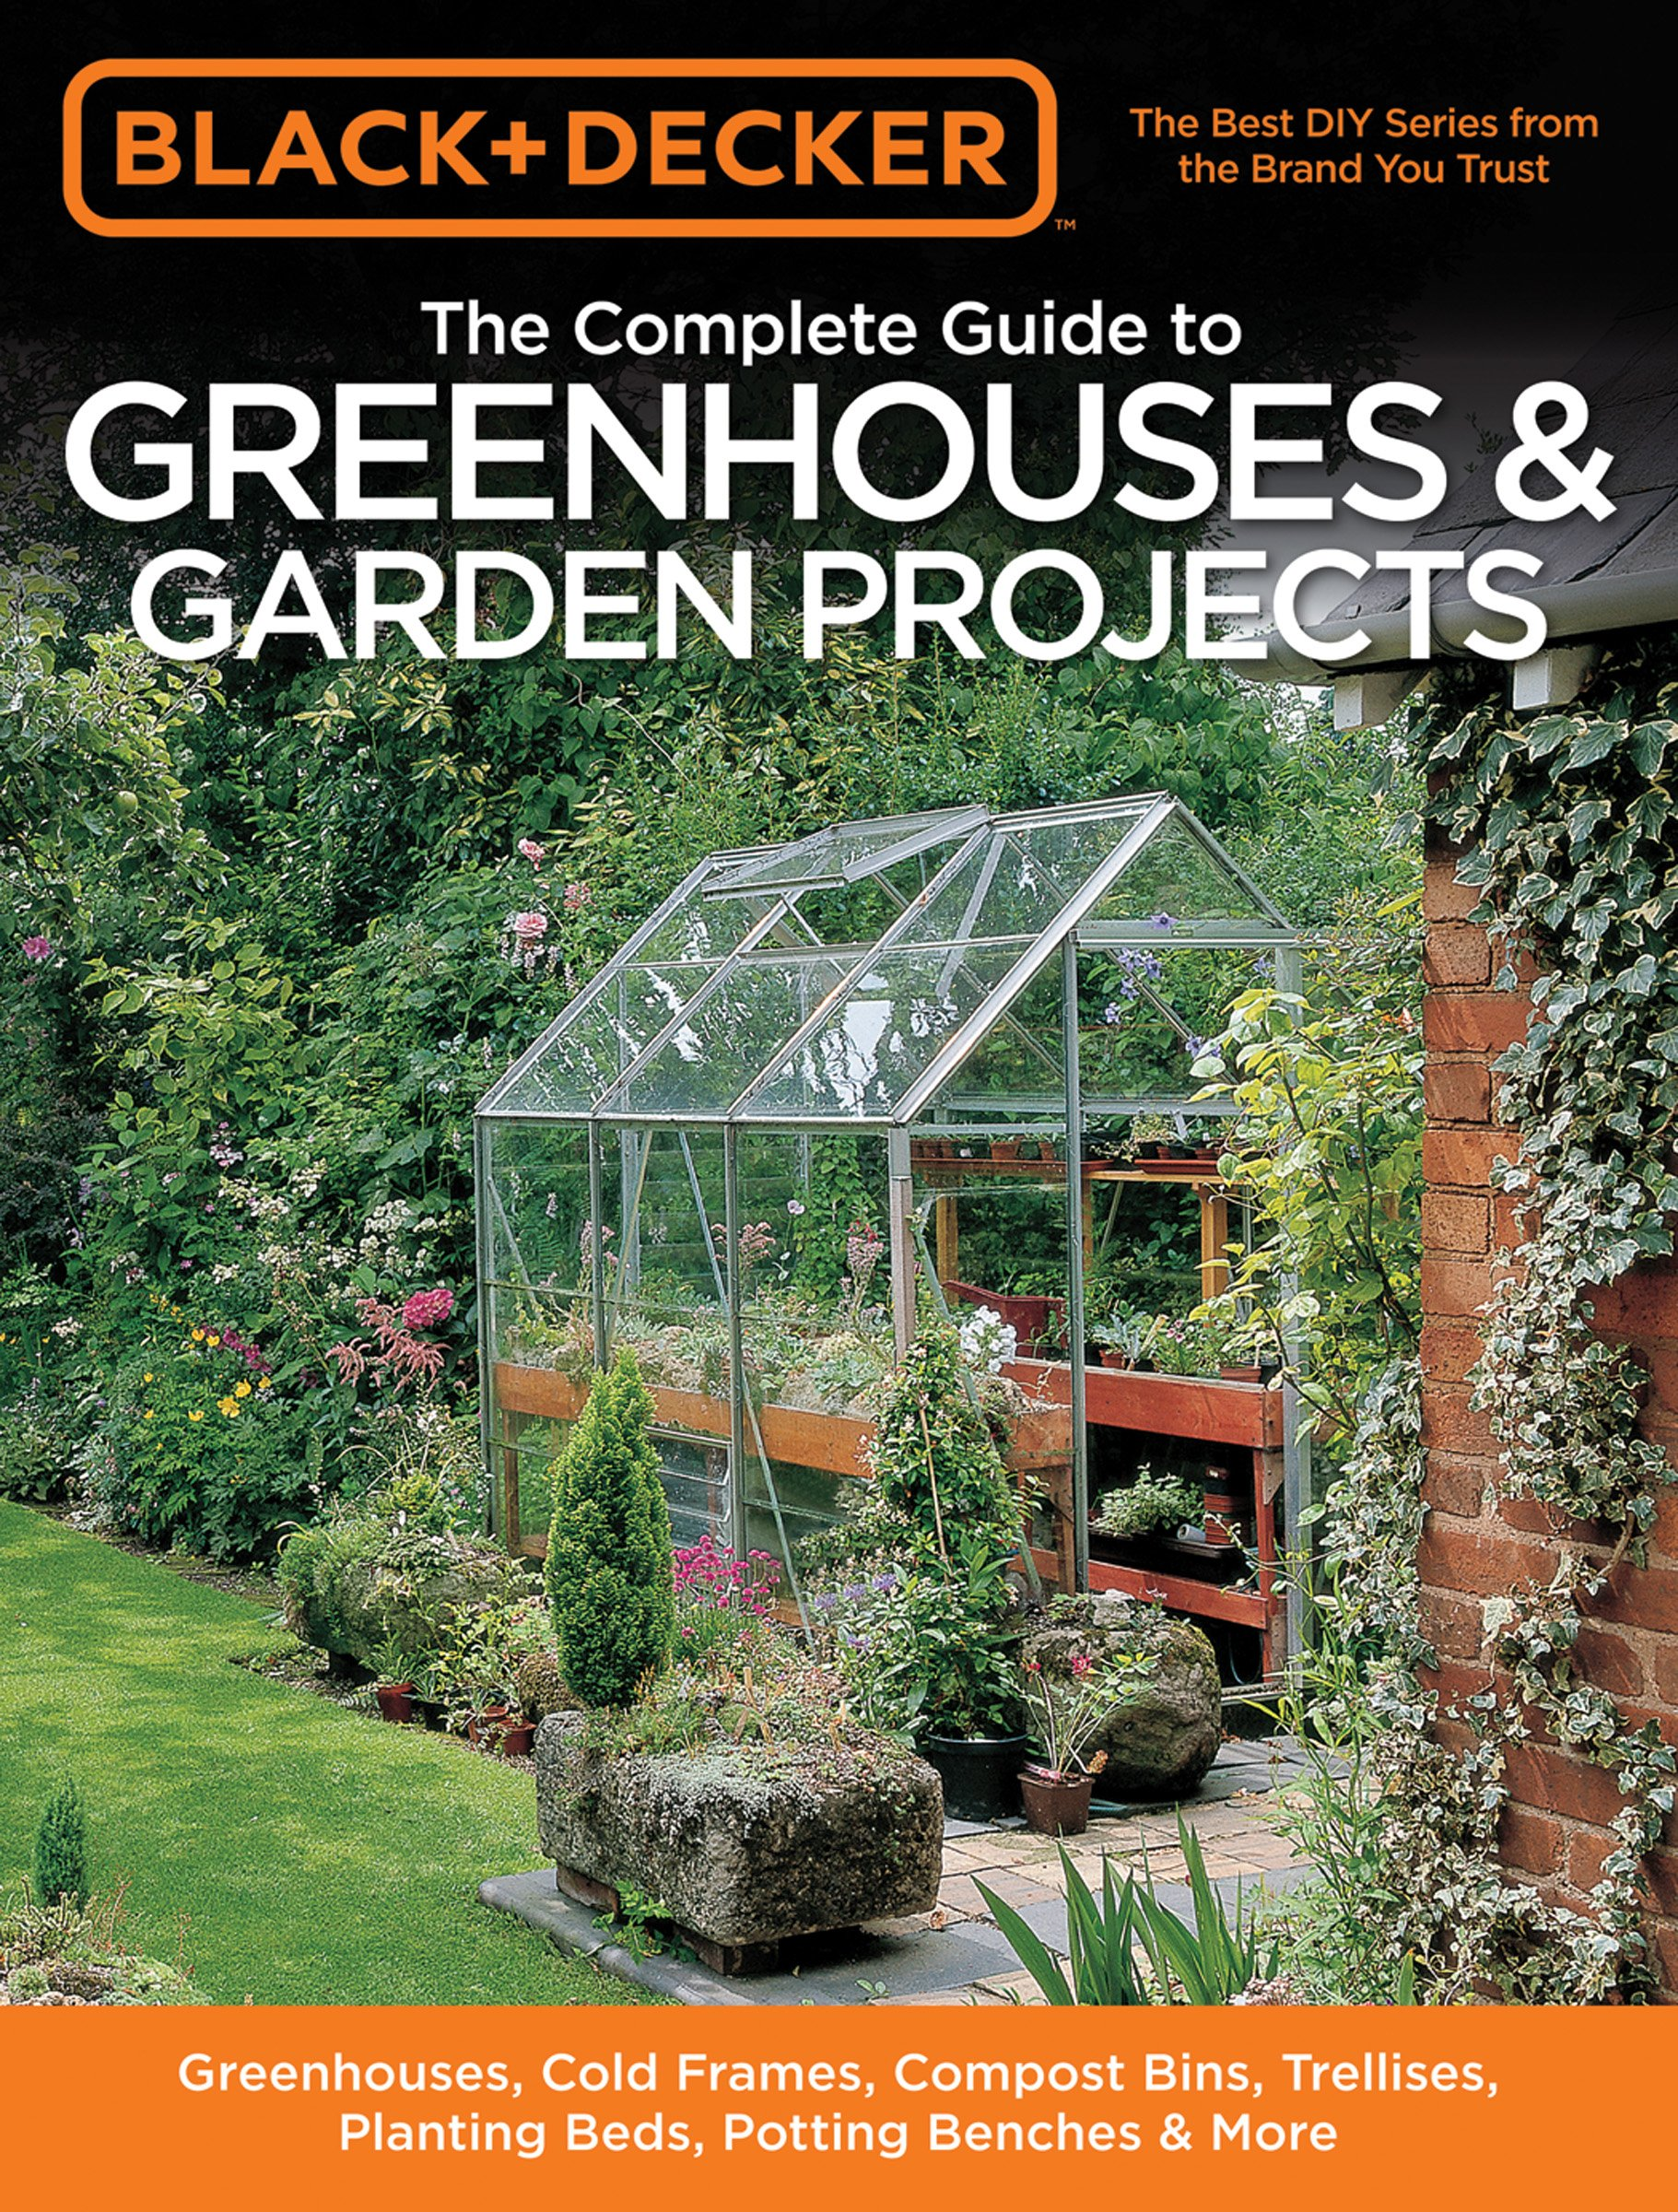 Black U0026 Decker The Complete Guide To Greenhouses U0026 Garden Projects:  Greenhouses, Cold Frames, Compost Bins, Trellises, Planting Beds, Potting  Benches U0026 More ...